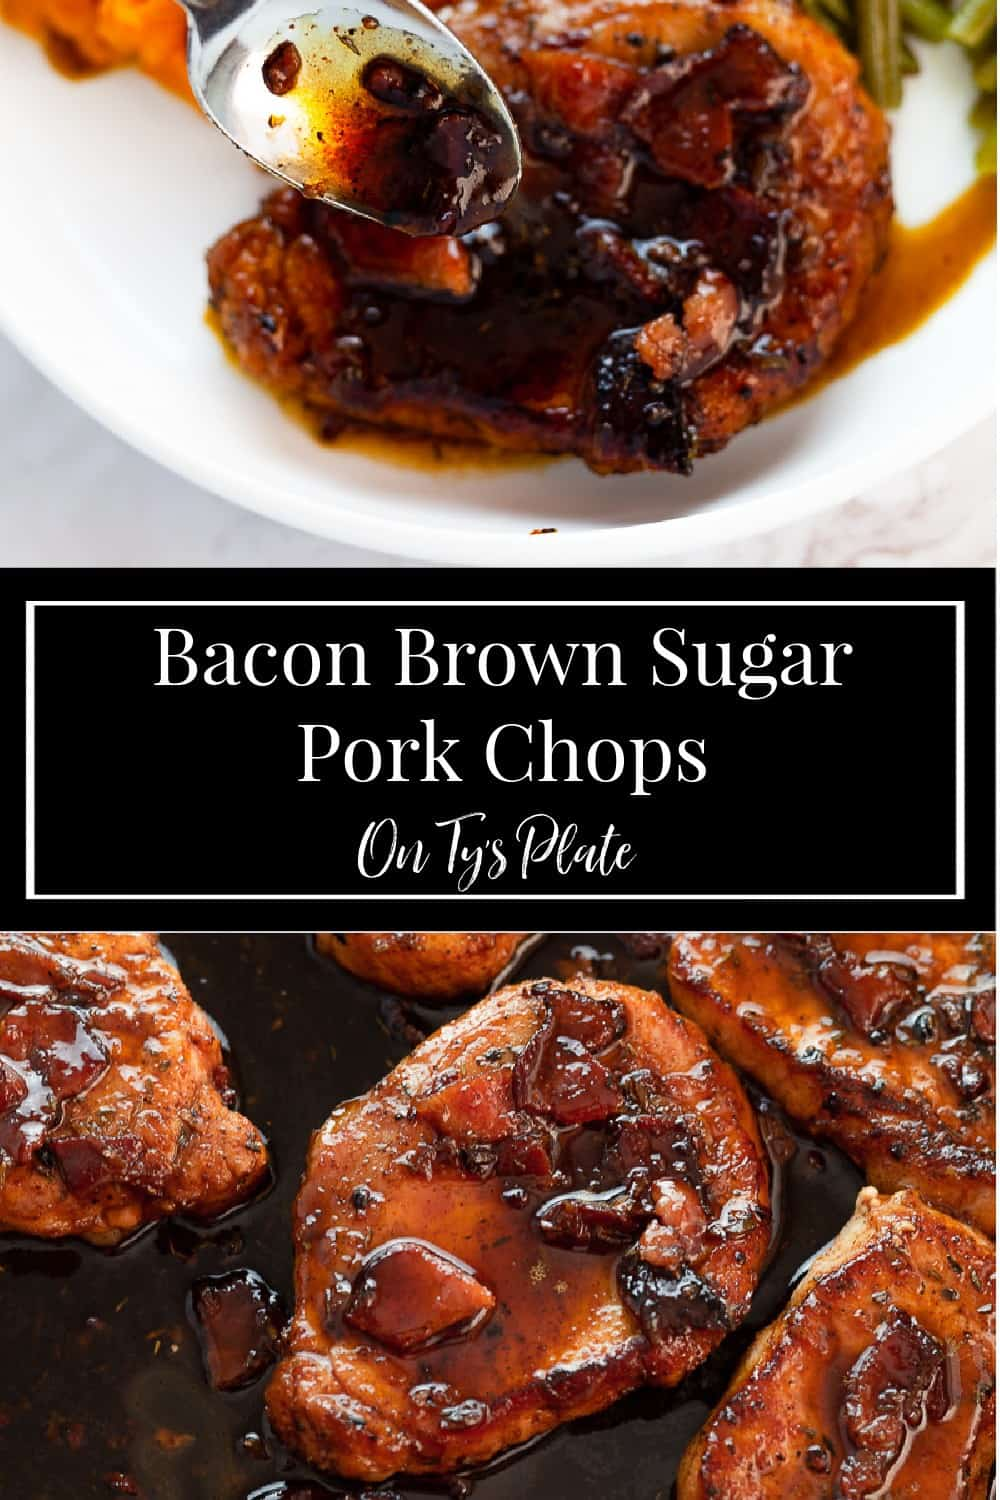 Bacon Brown Sugar Pork Chops